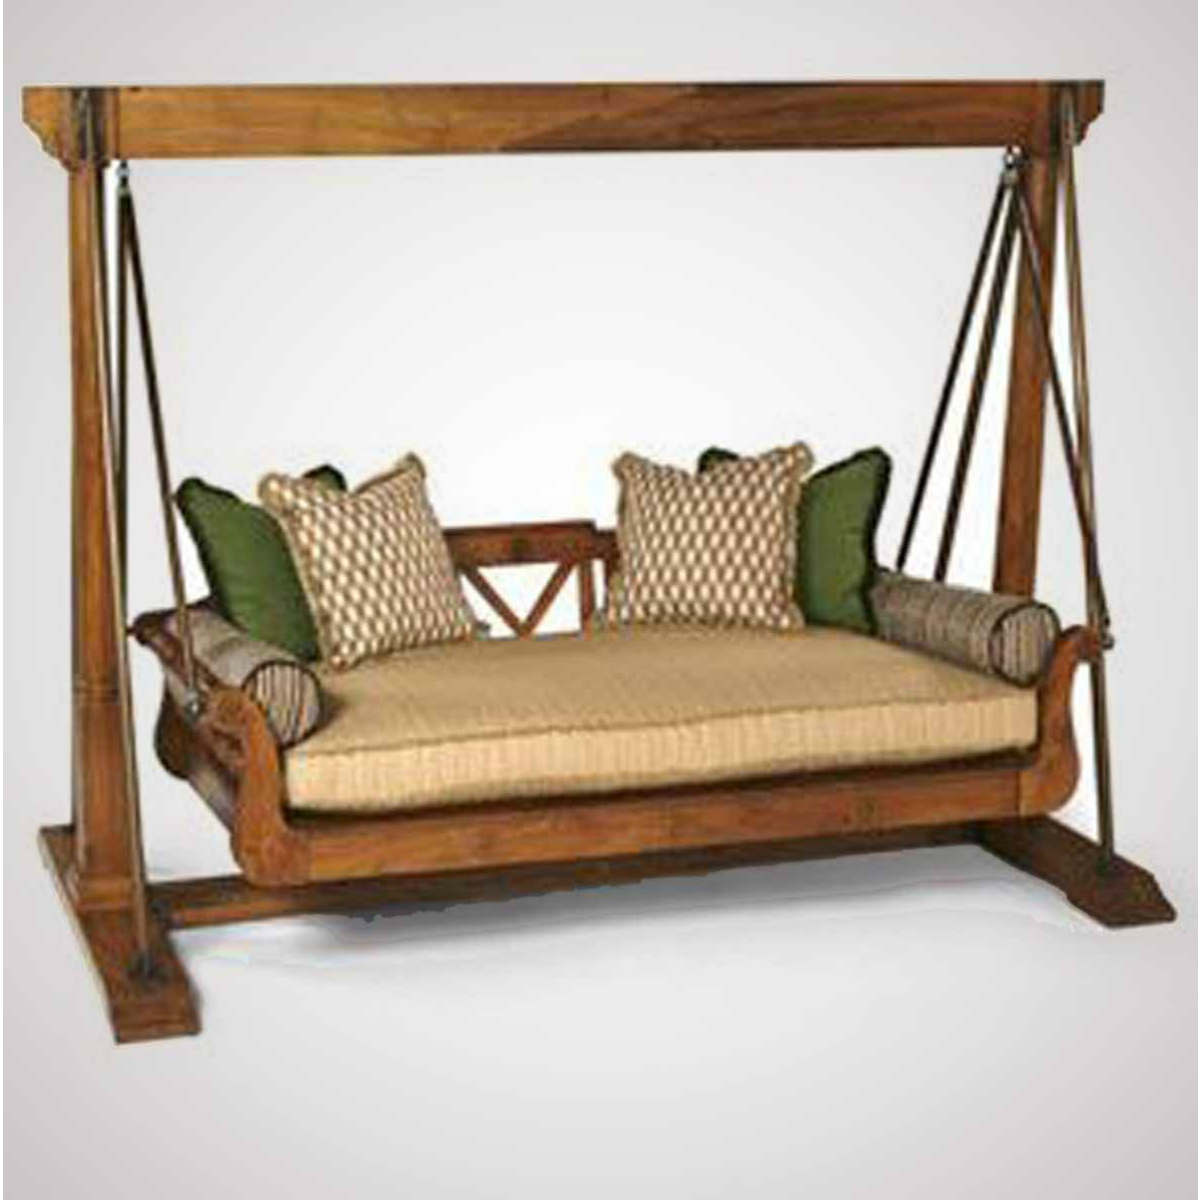 Teak Swing Bed | Jardín. Decoración | Pinterest | Sillas colgantes ...